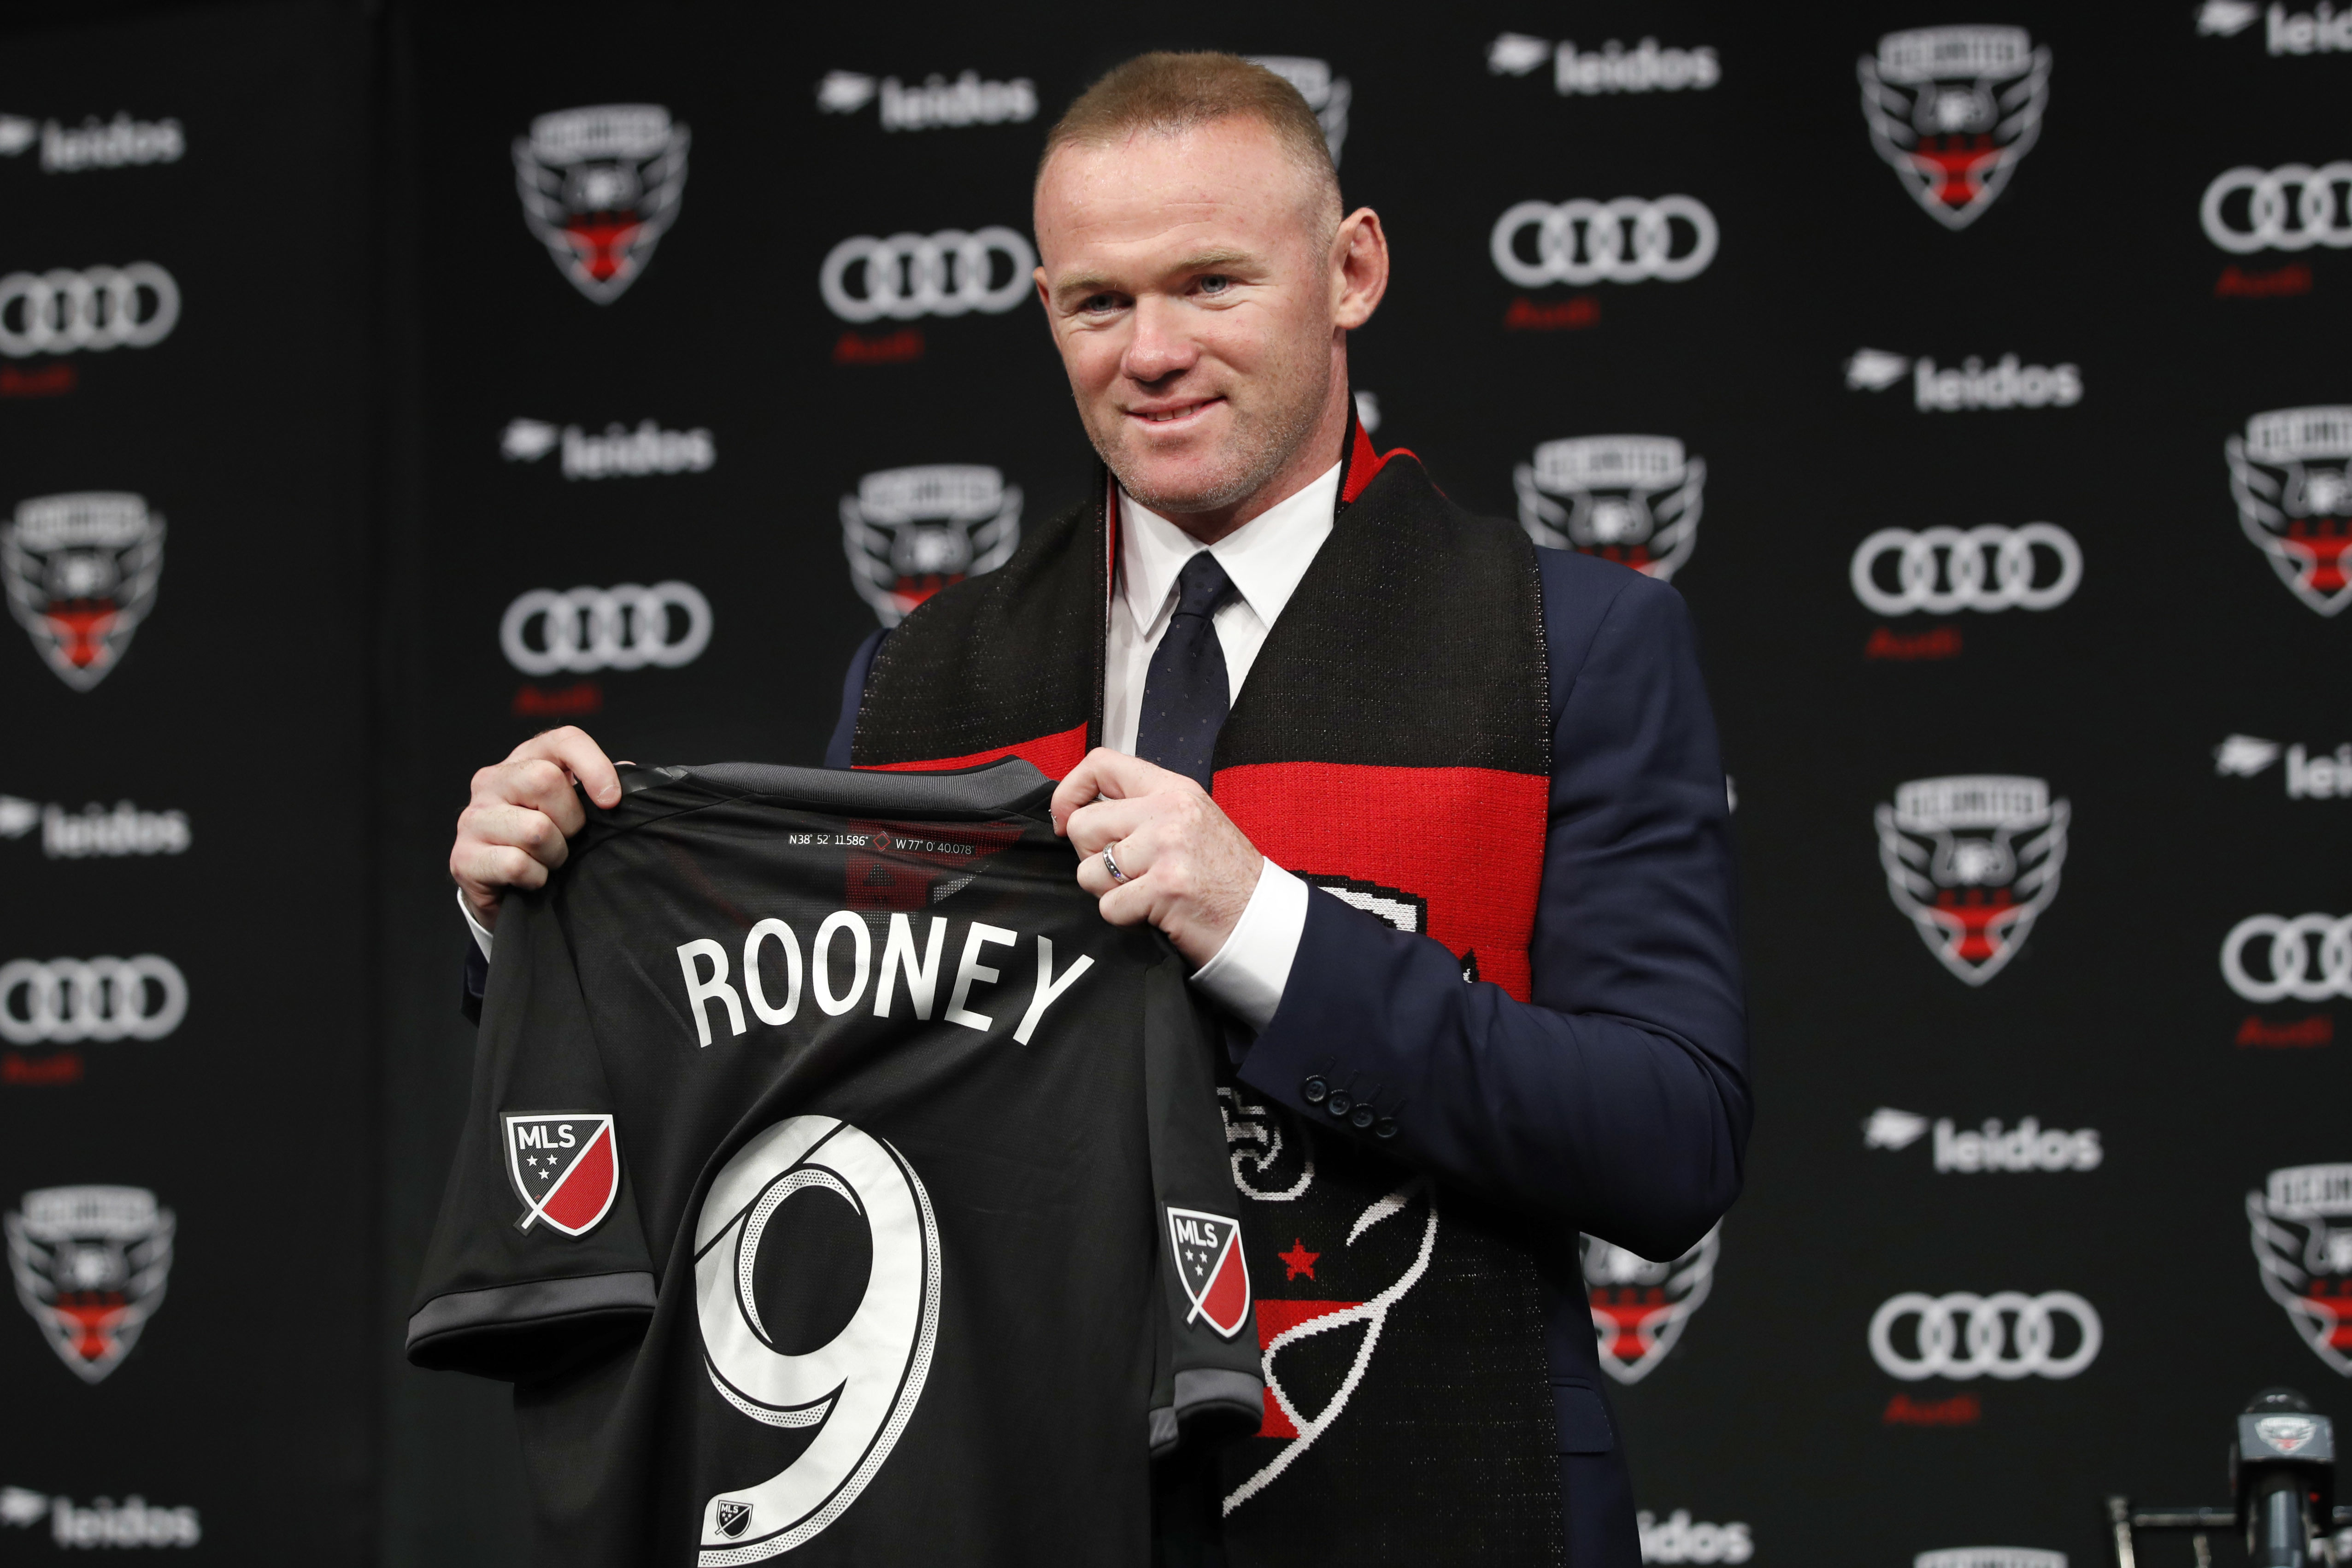 57689d43a Wayne s World  DC United formally introduces Rooney